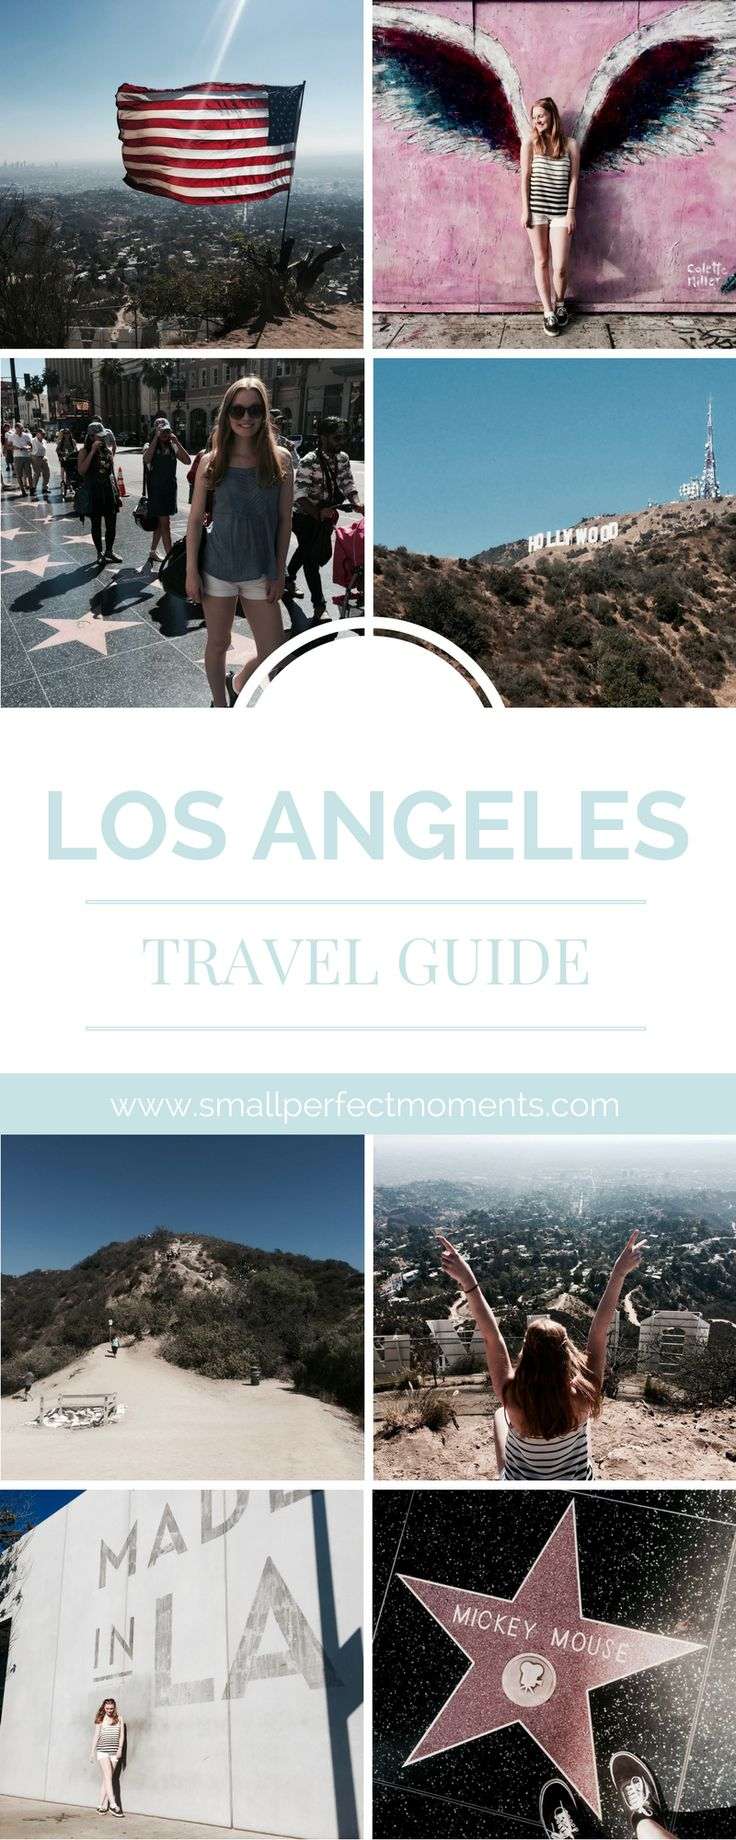 Travel Guide Los Angeles + coole Instagram Locations